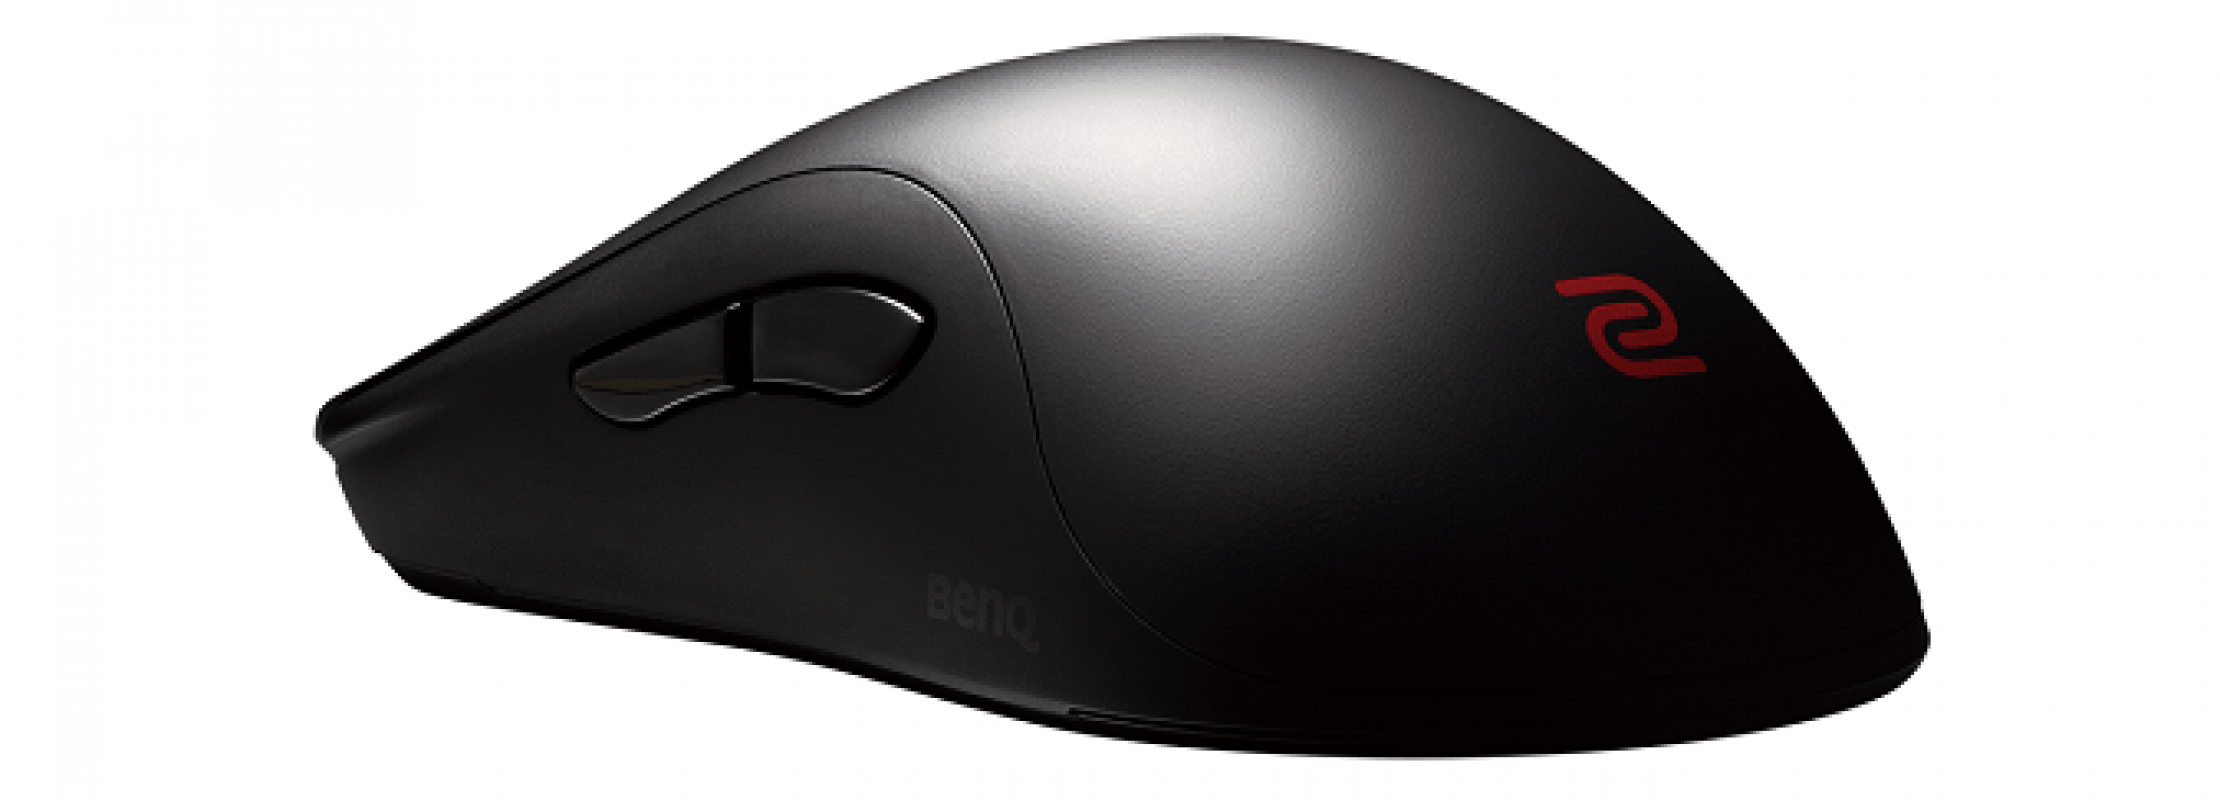 Zowie ZA11 Mouse and Mousepad Review - Tech IT Out